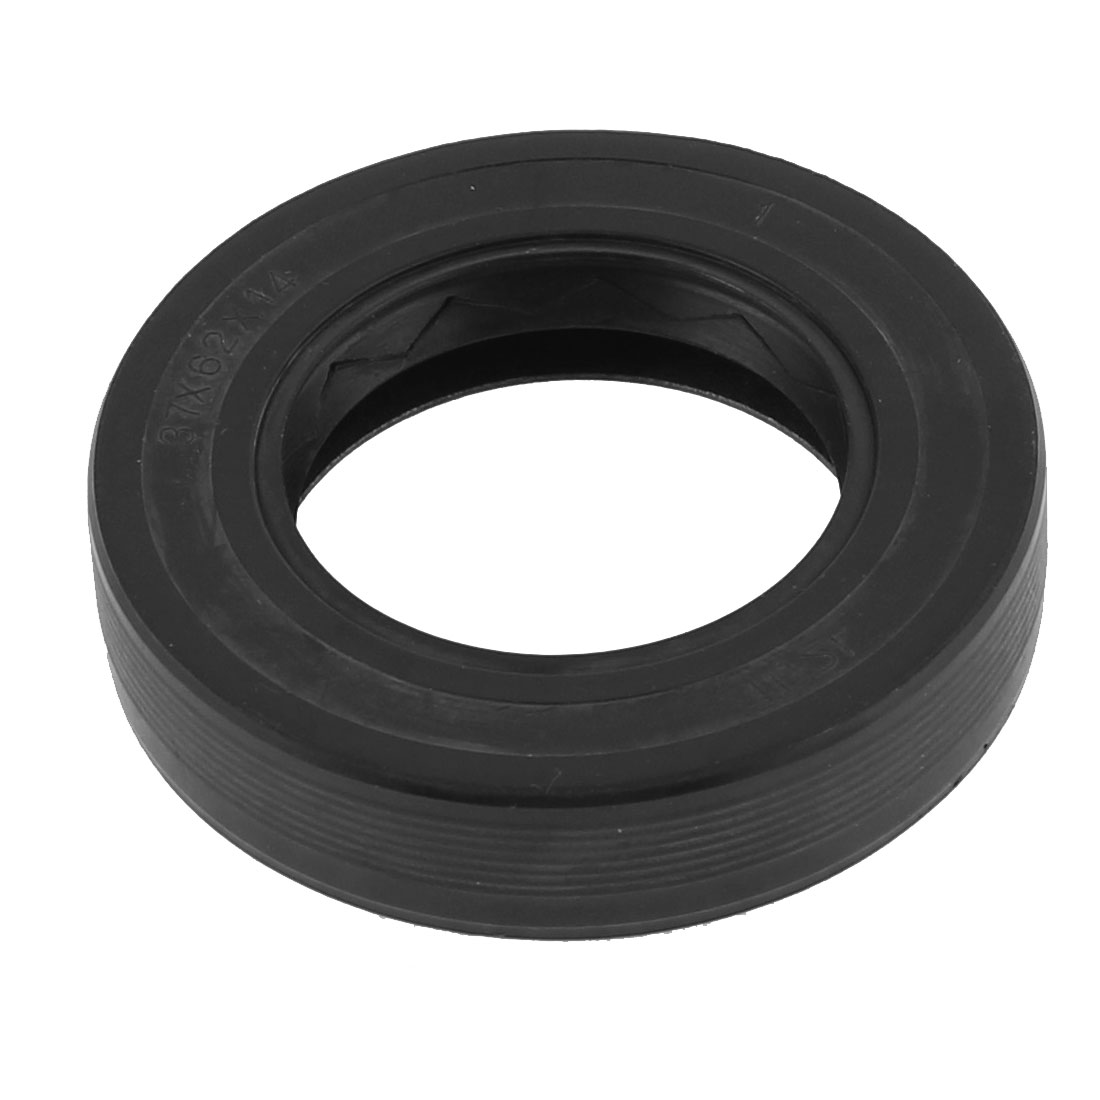 Car Rear Wheel Inner Oil Seal Ring Gasket Washer 36mm x 62mm x 14mm